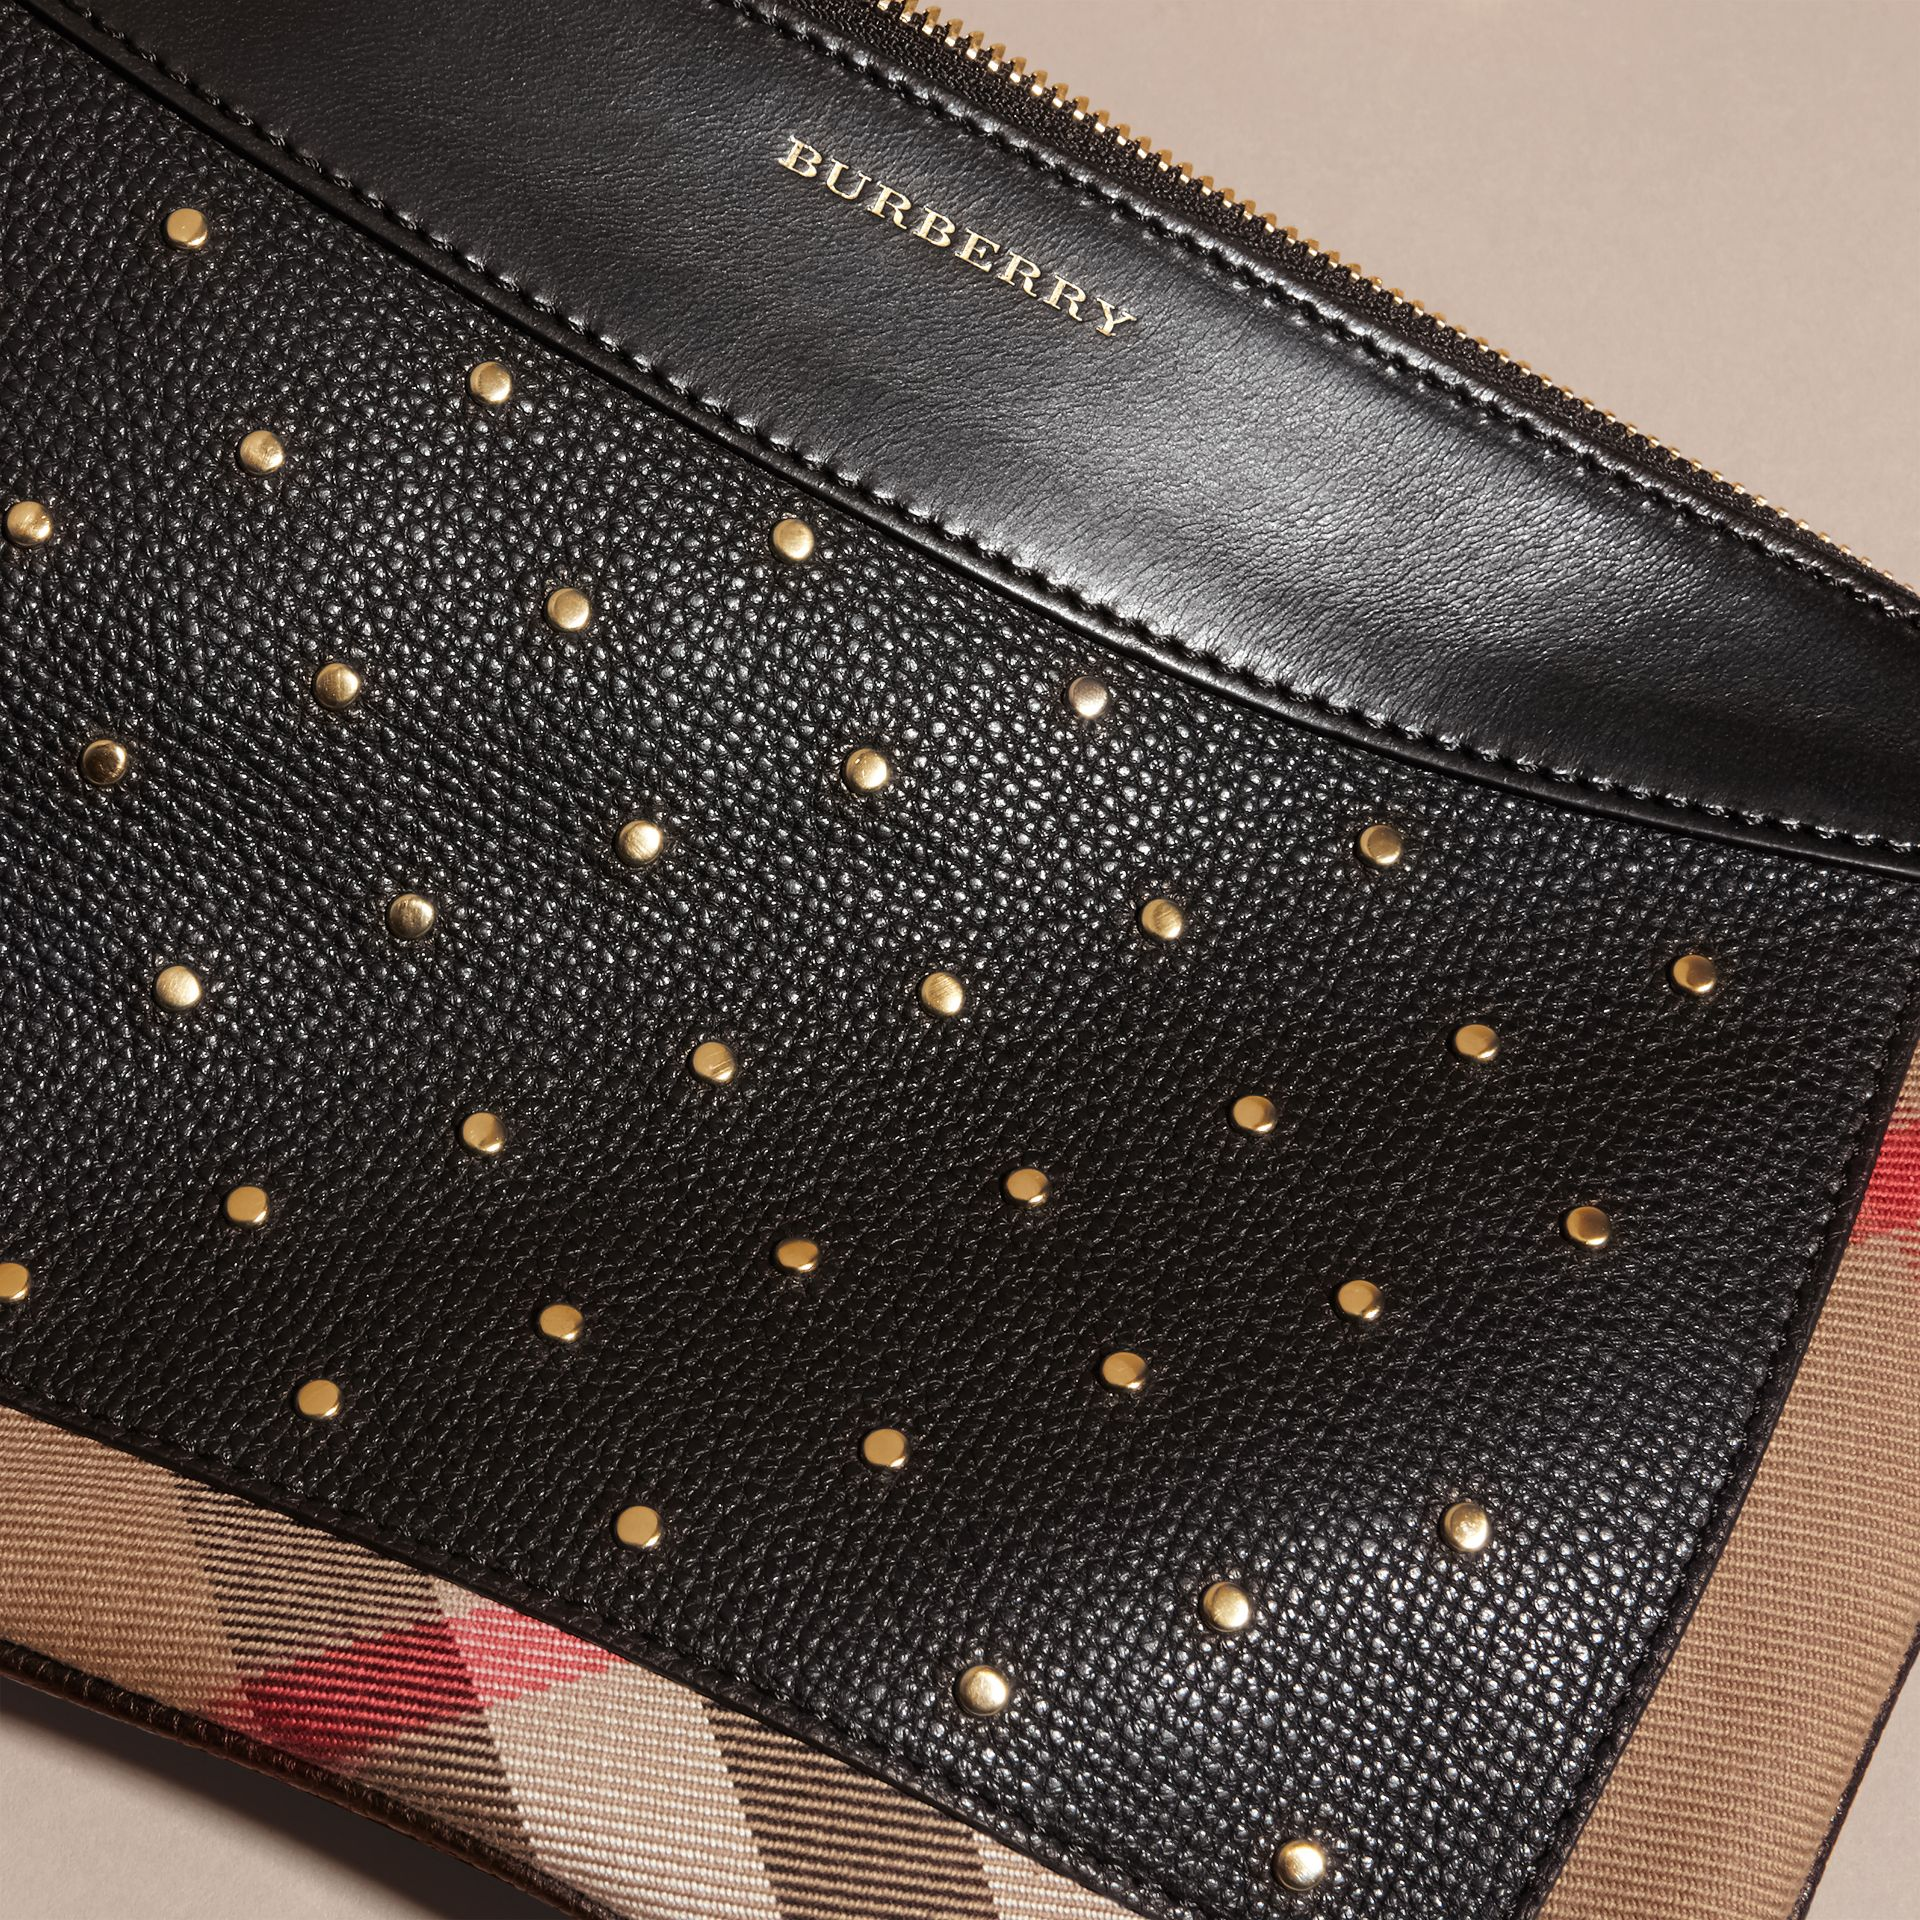 Riveted Leather and House Check Clutch Bag Black - gallery image 2